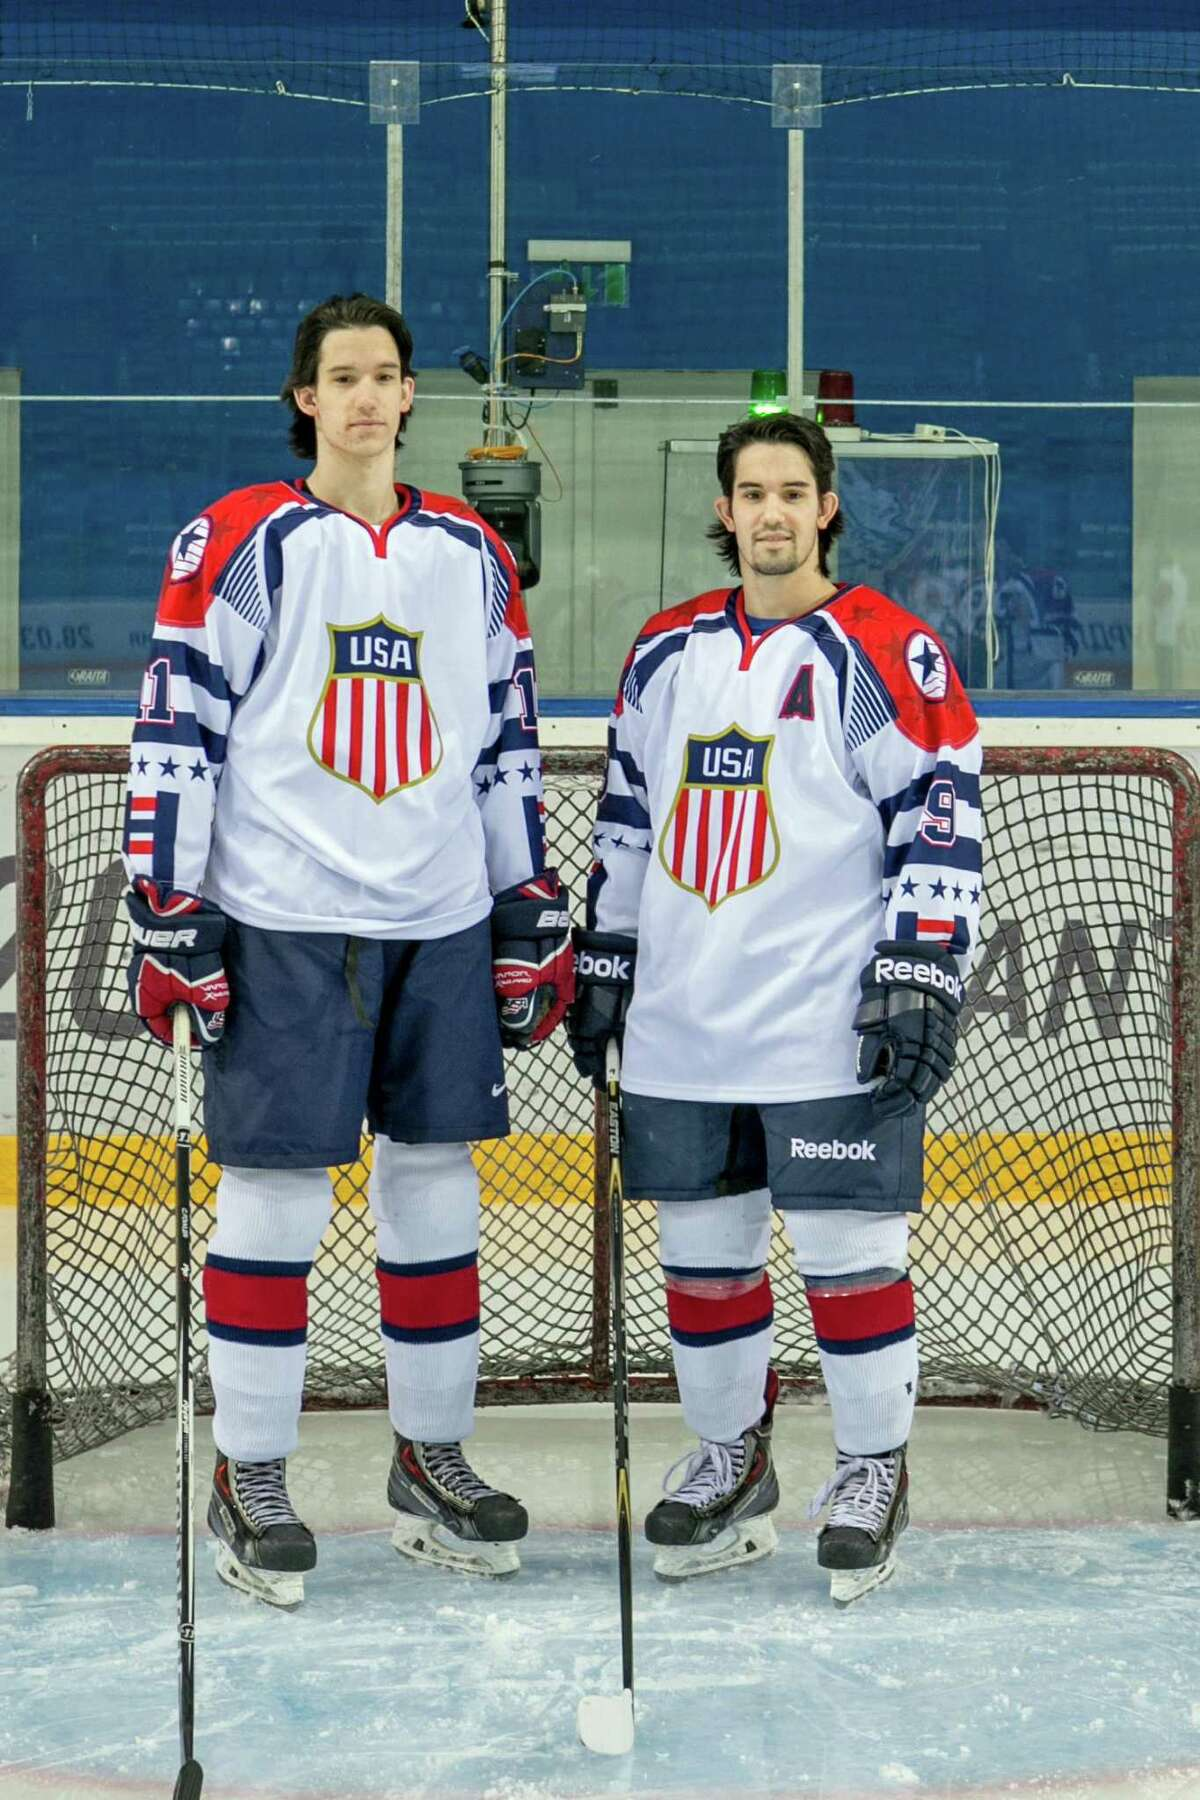 Garrett and Peter Gintoli, left to right, also won bronze medals with the U.S. ice hockey team at the 2015 Winter Deaflympics.